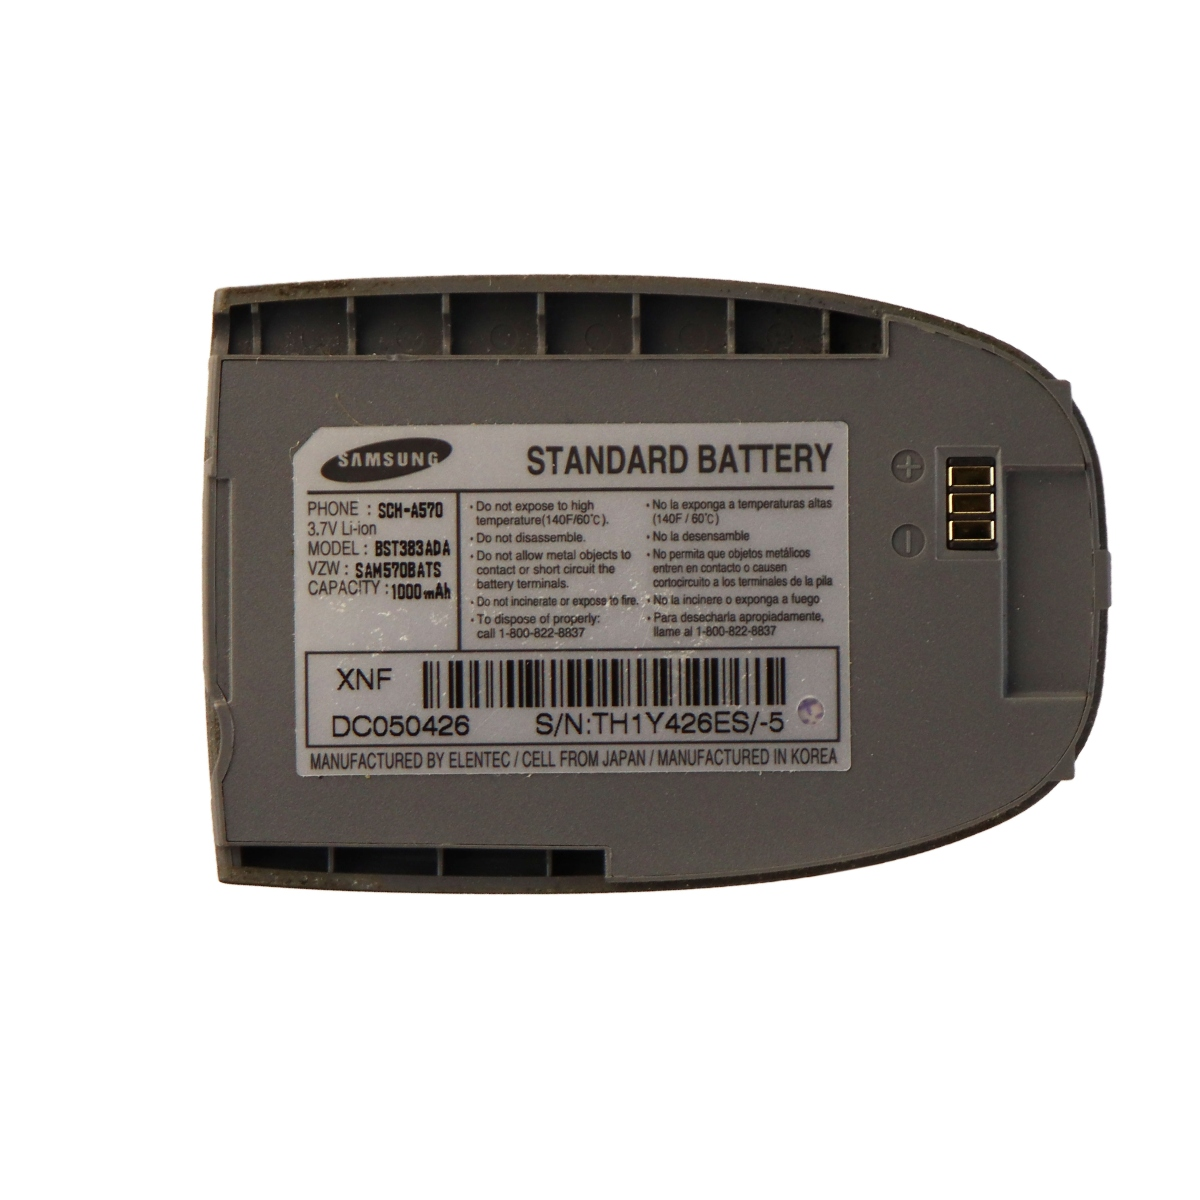 Samsung Replacement battery 3.7V BST383ADA for Samsung SCH-A570 - Gray